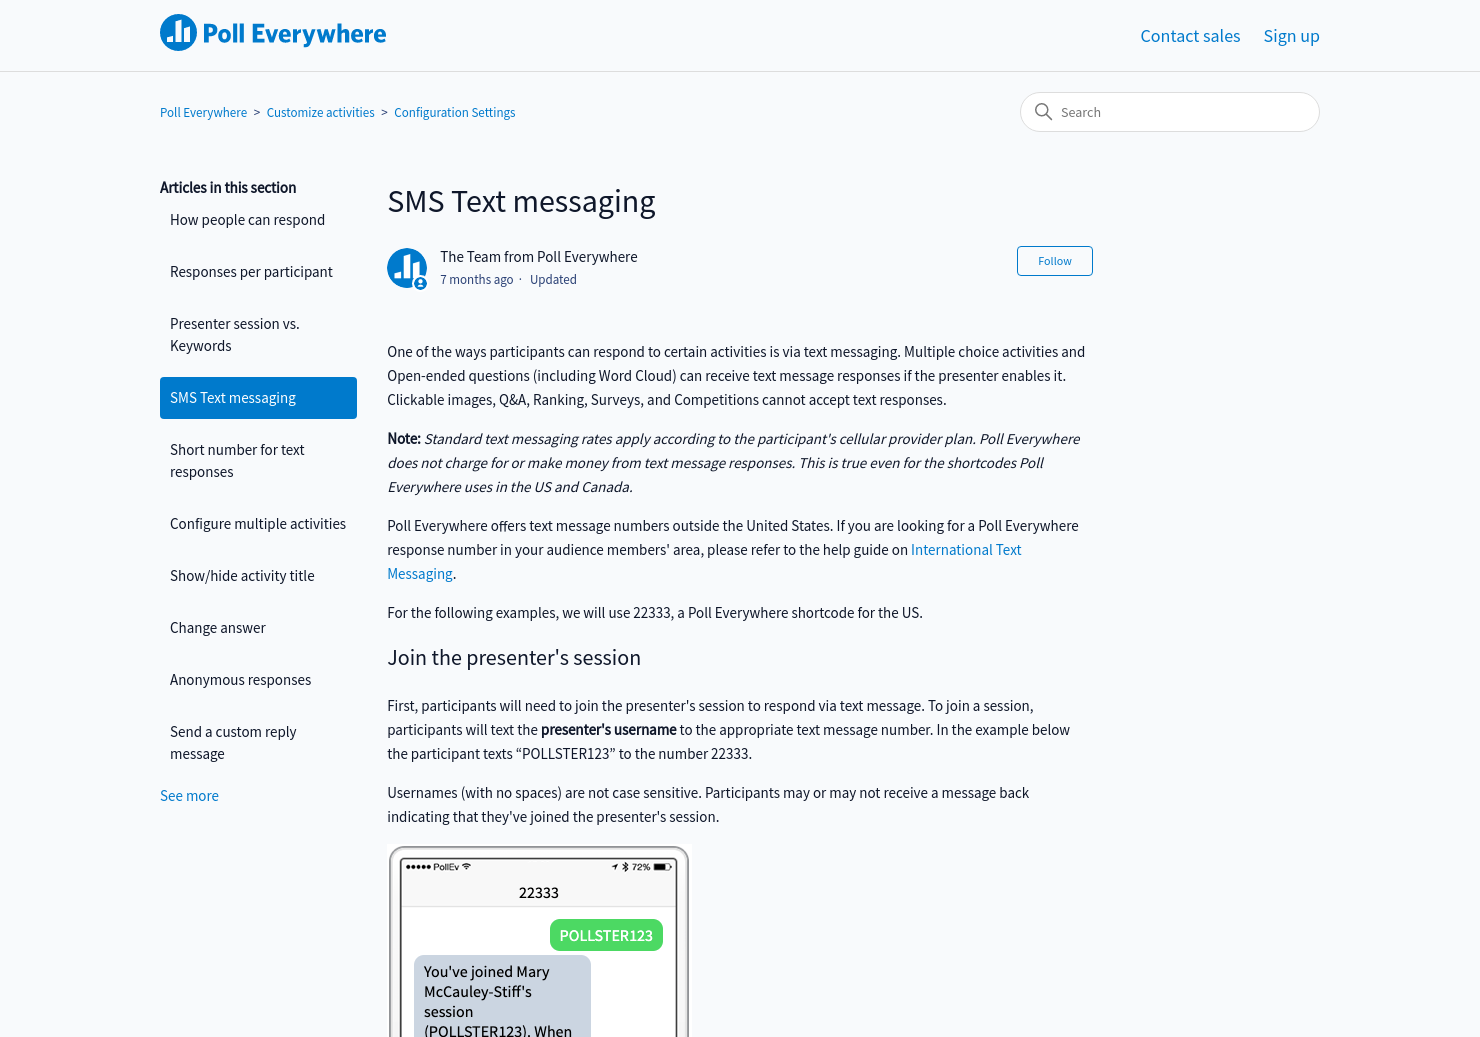 SMS Text messaging | Poll Everywhere